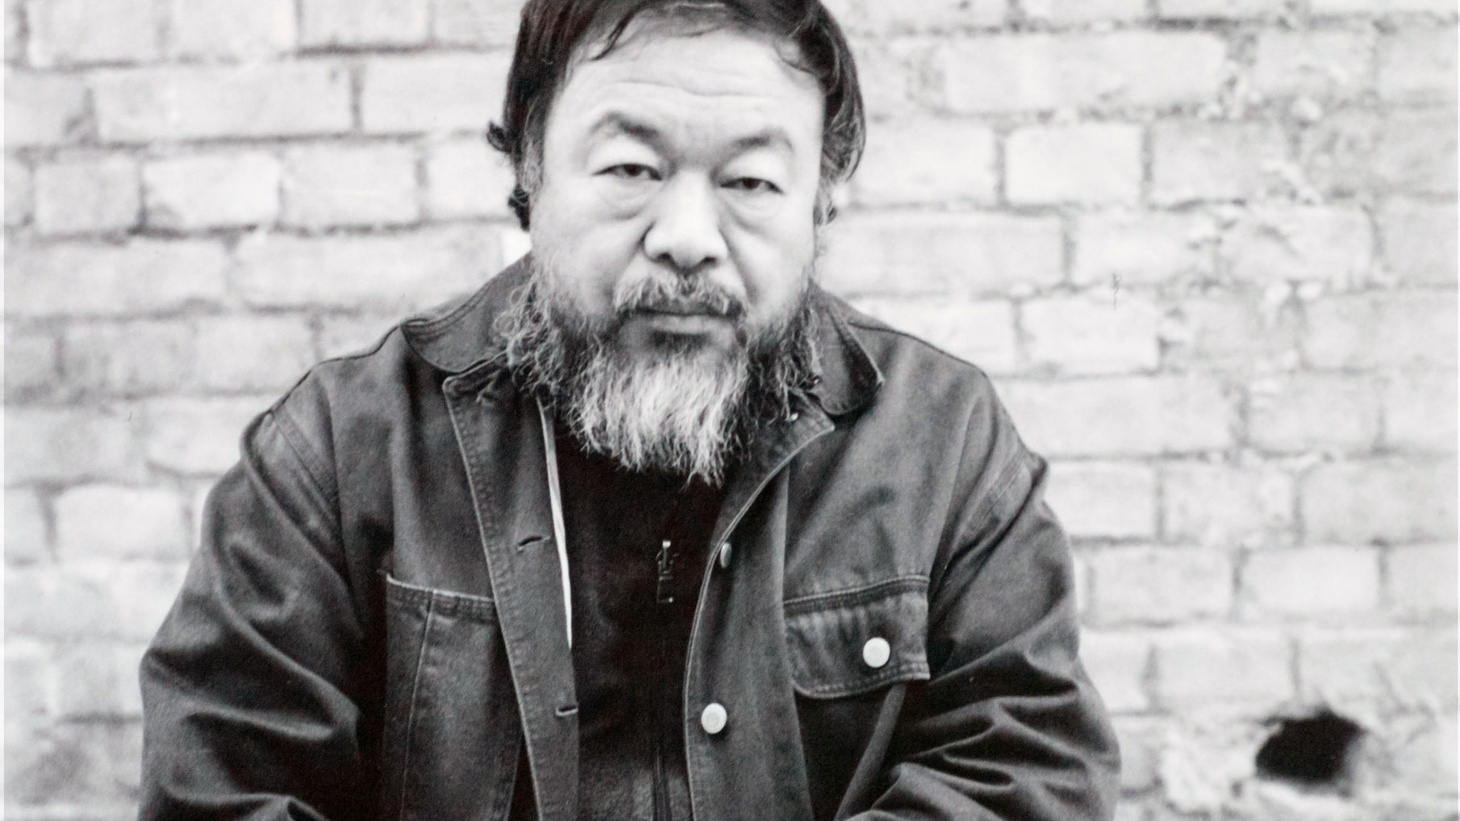 Ai Weiwei is an artist who uses many canvases to express himself. From art installations to architecture, social media to the big screen, Ai is one of the most transcendent figures in the world.